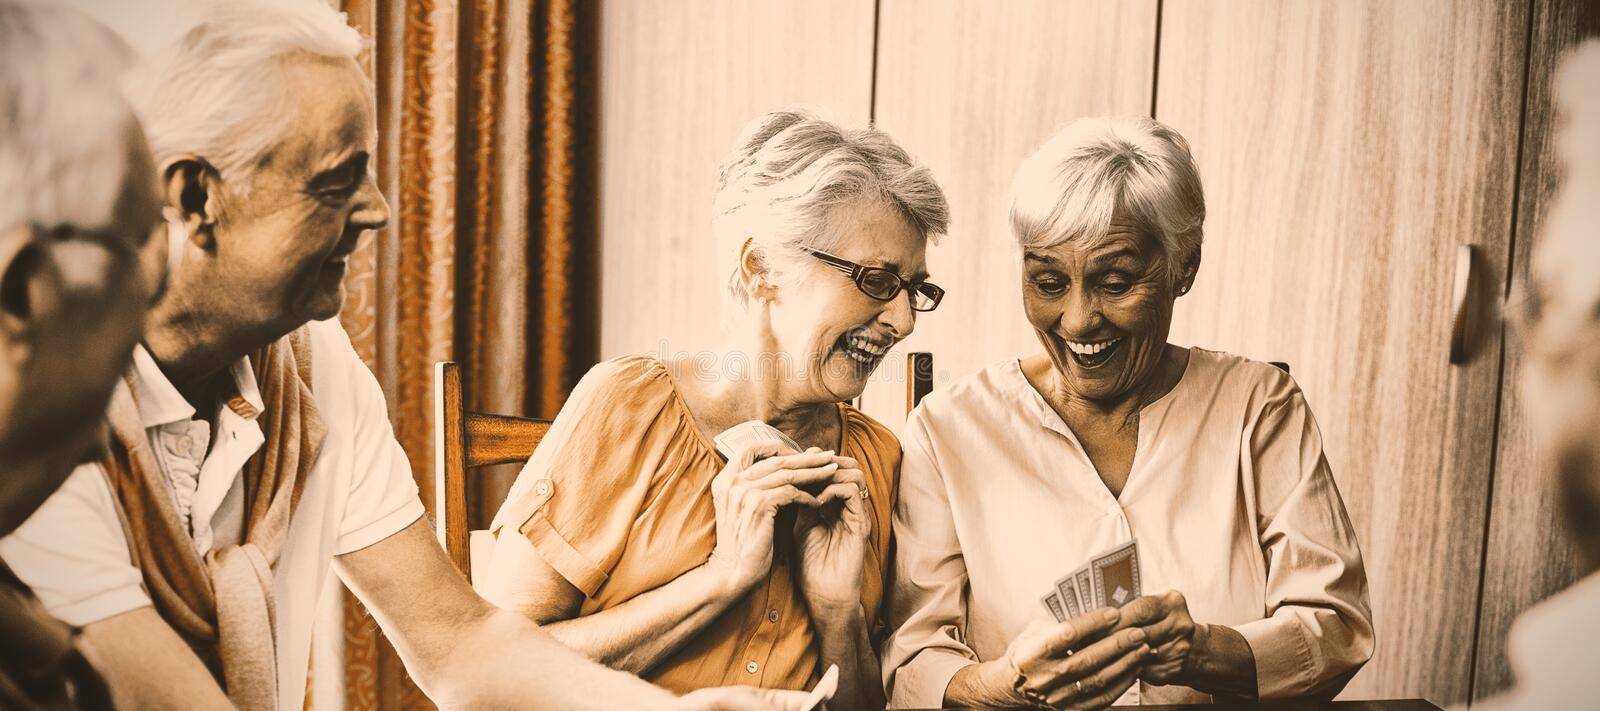 Seniors playing cards royalty free stock photography